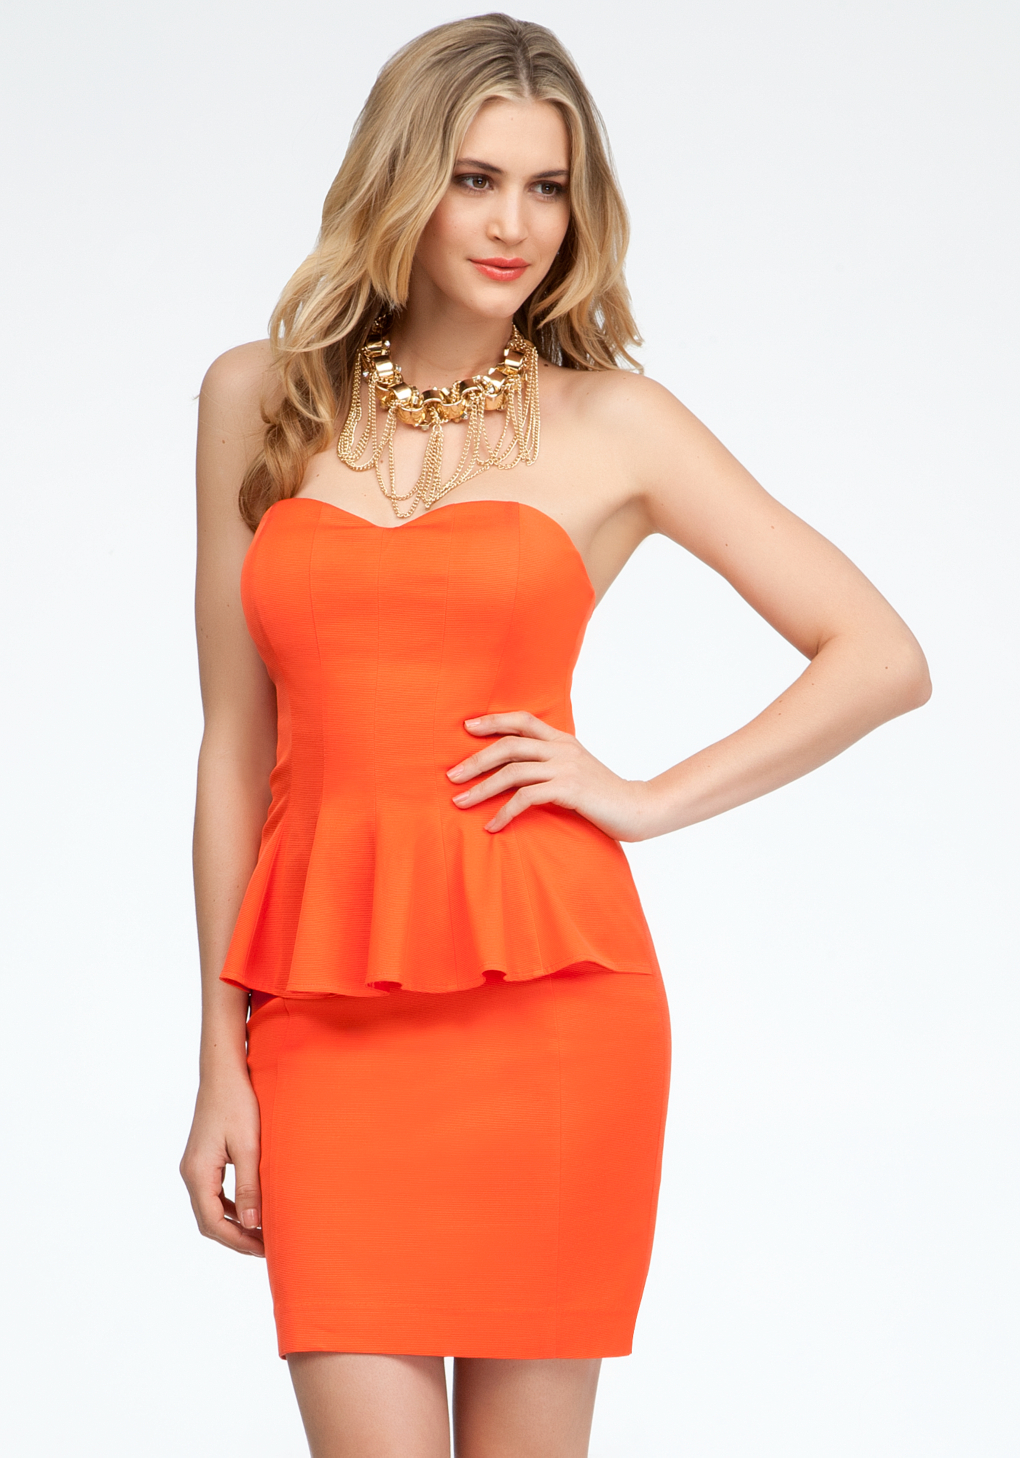 Coral strapless peplum dress video